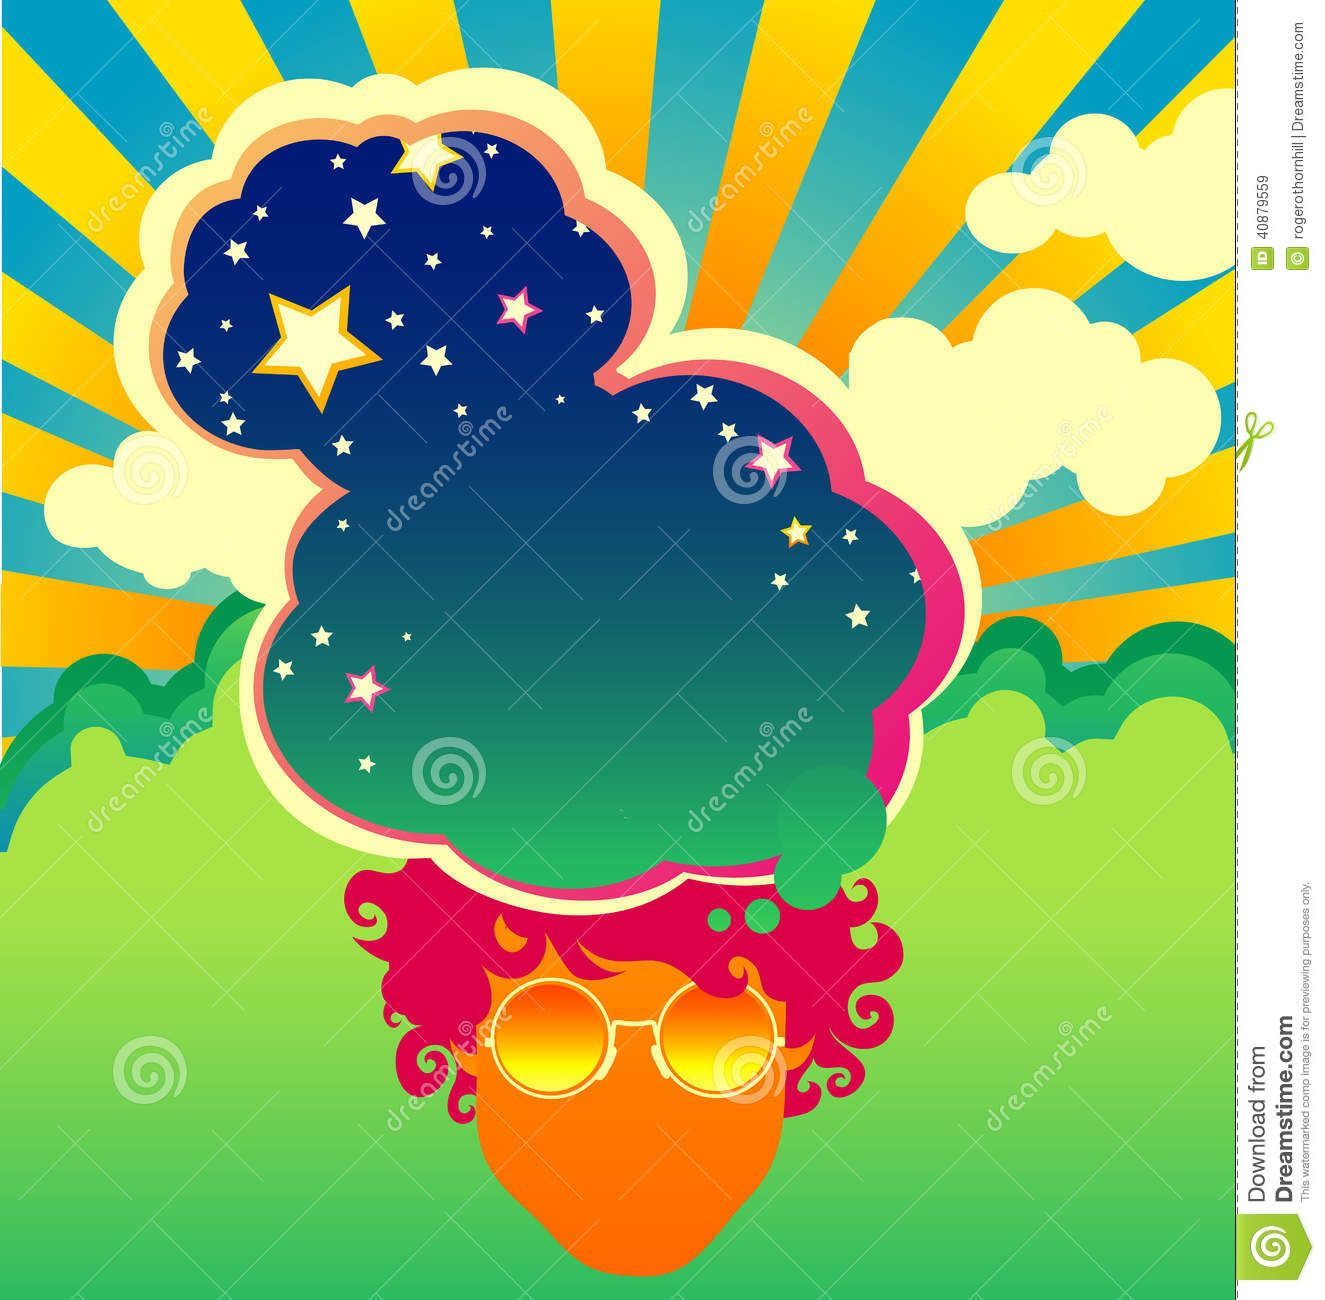 Poster design 1960s - Psychedelic Poster Template Stock Vector Image 40879559